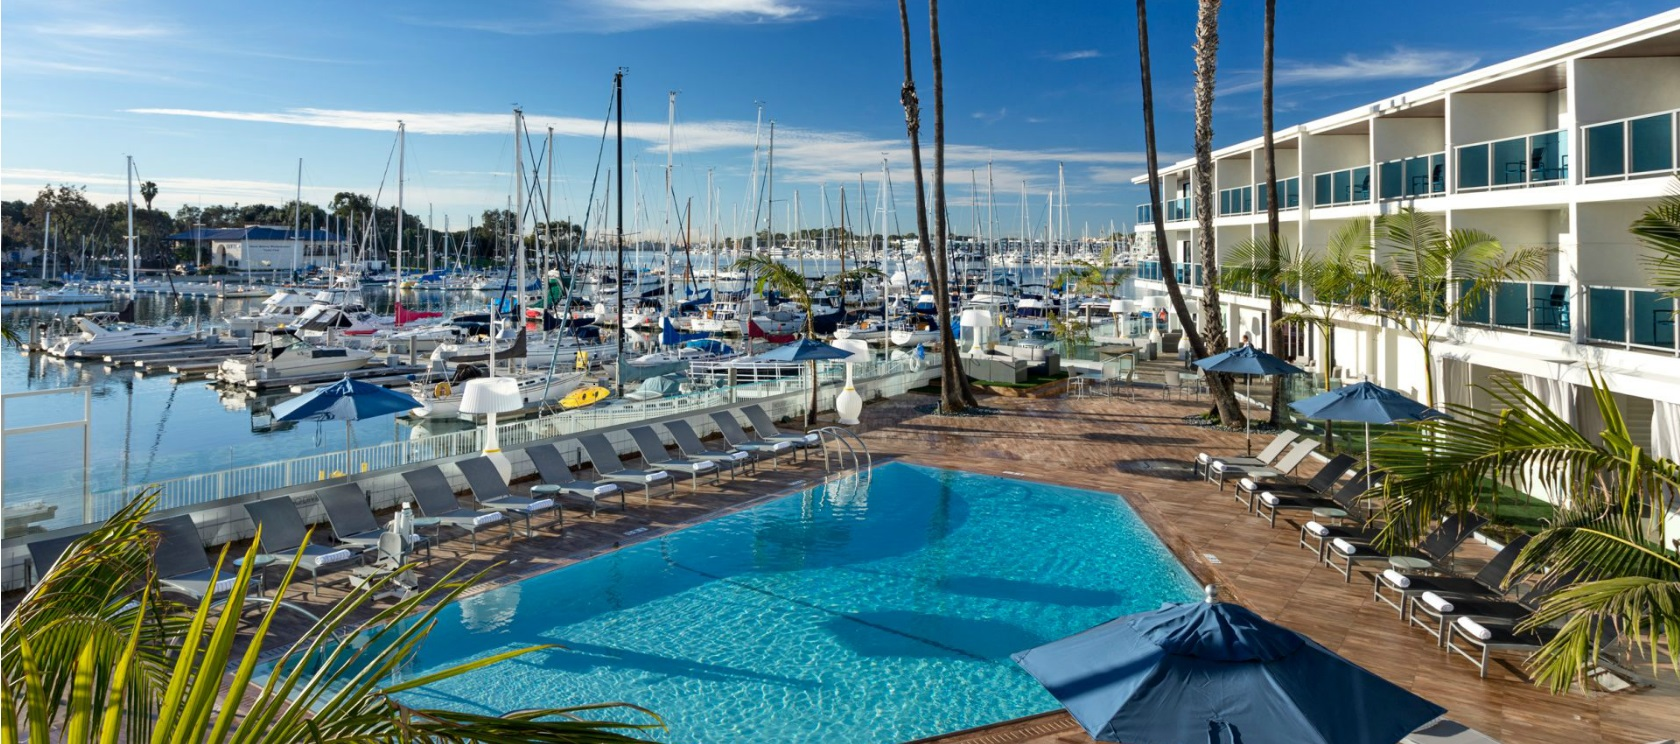 Overview look of the Marina Del Rey Hotel Pool